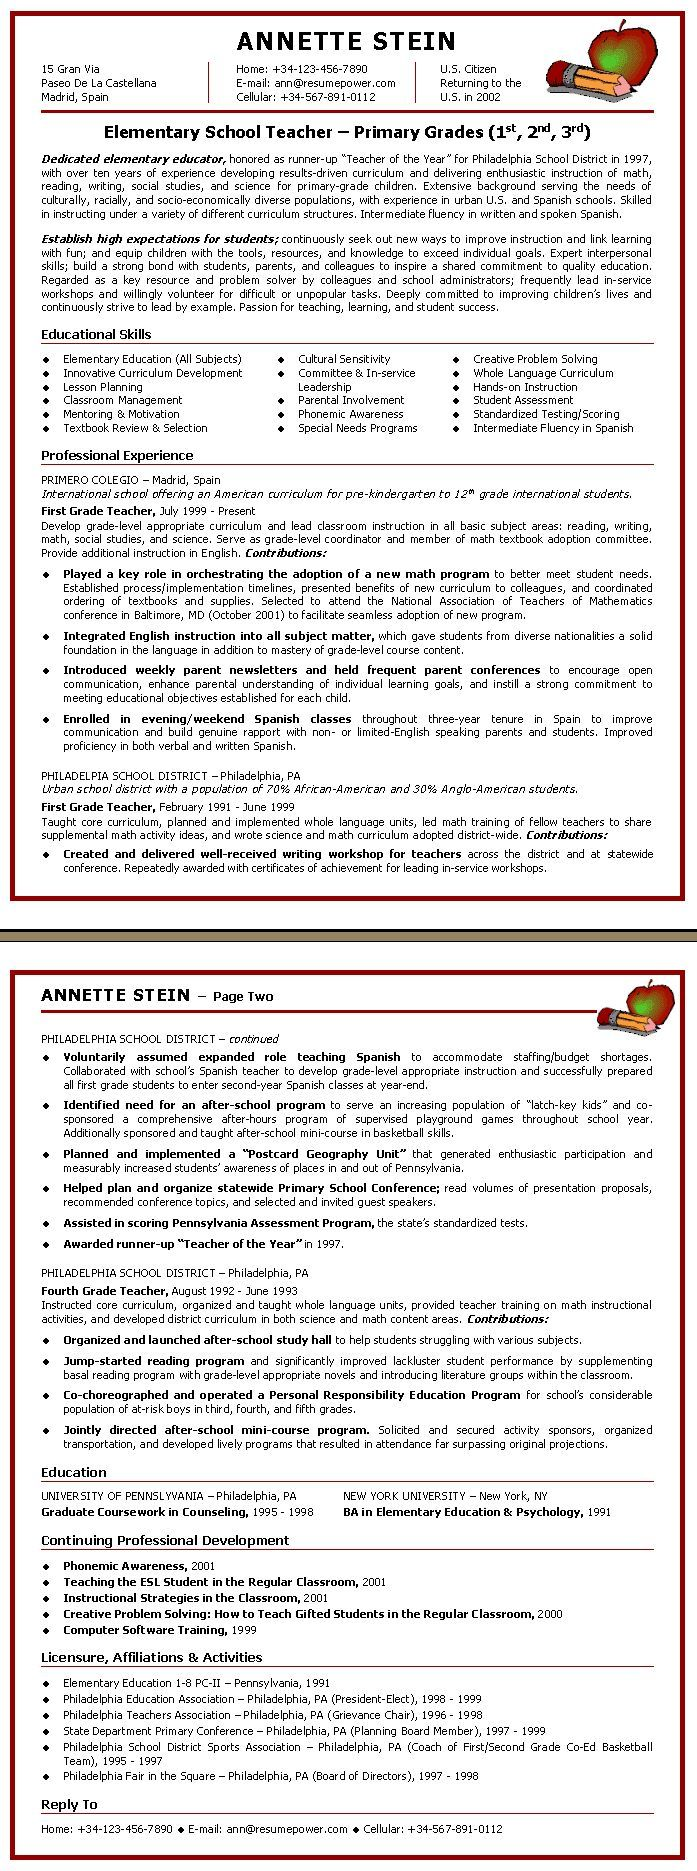 best sample resume cover letter ideas pinterest samples advanced career systems inc - Resume Sample For A Teacher